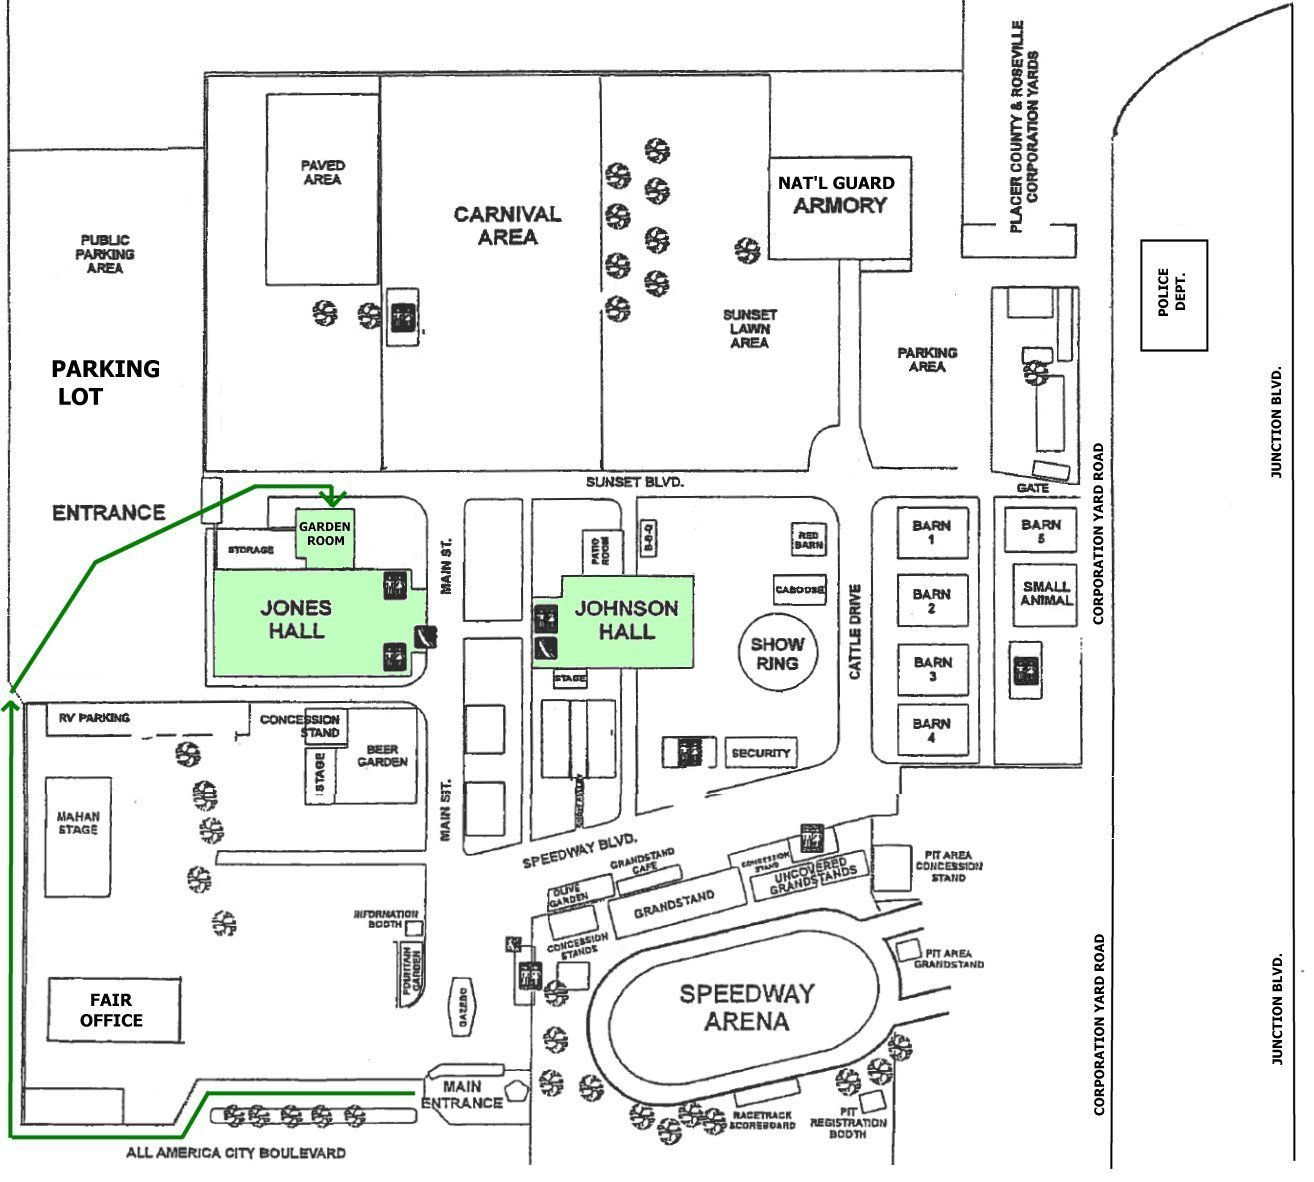 Walk-Around Map for Placer County Fairgrounds